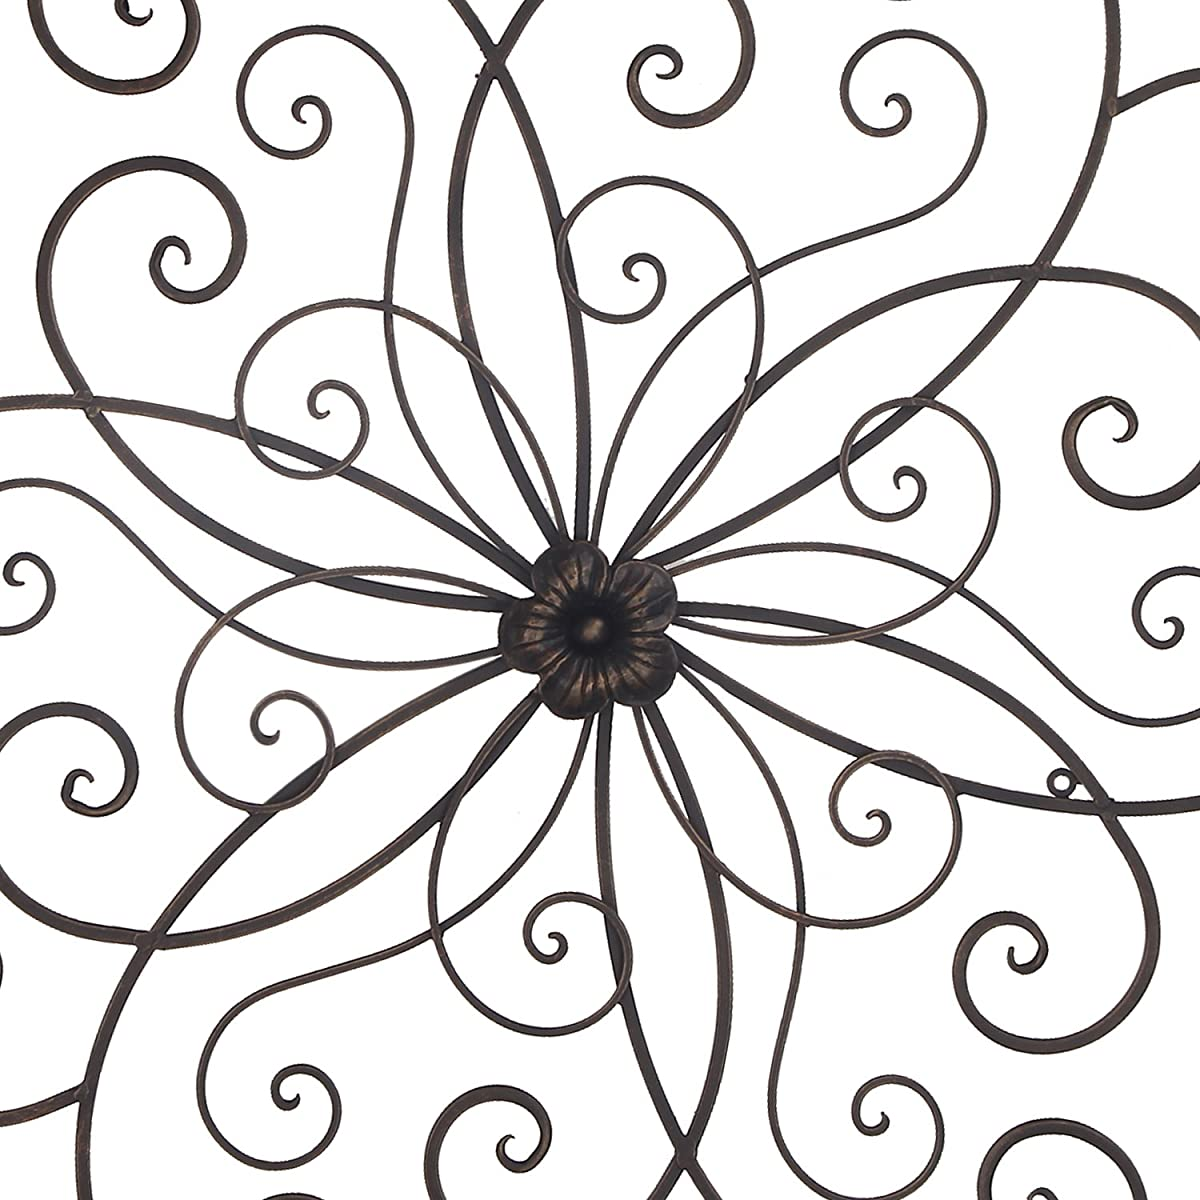 Homes Art Bronze Flower Urban Design Metal Wall Decor for Nature Home Art Decoration & Kitchen Gifts?